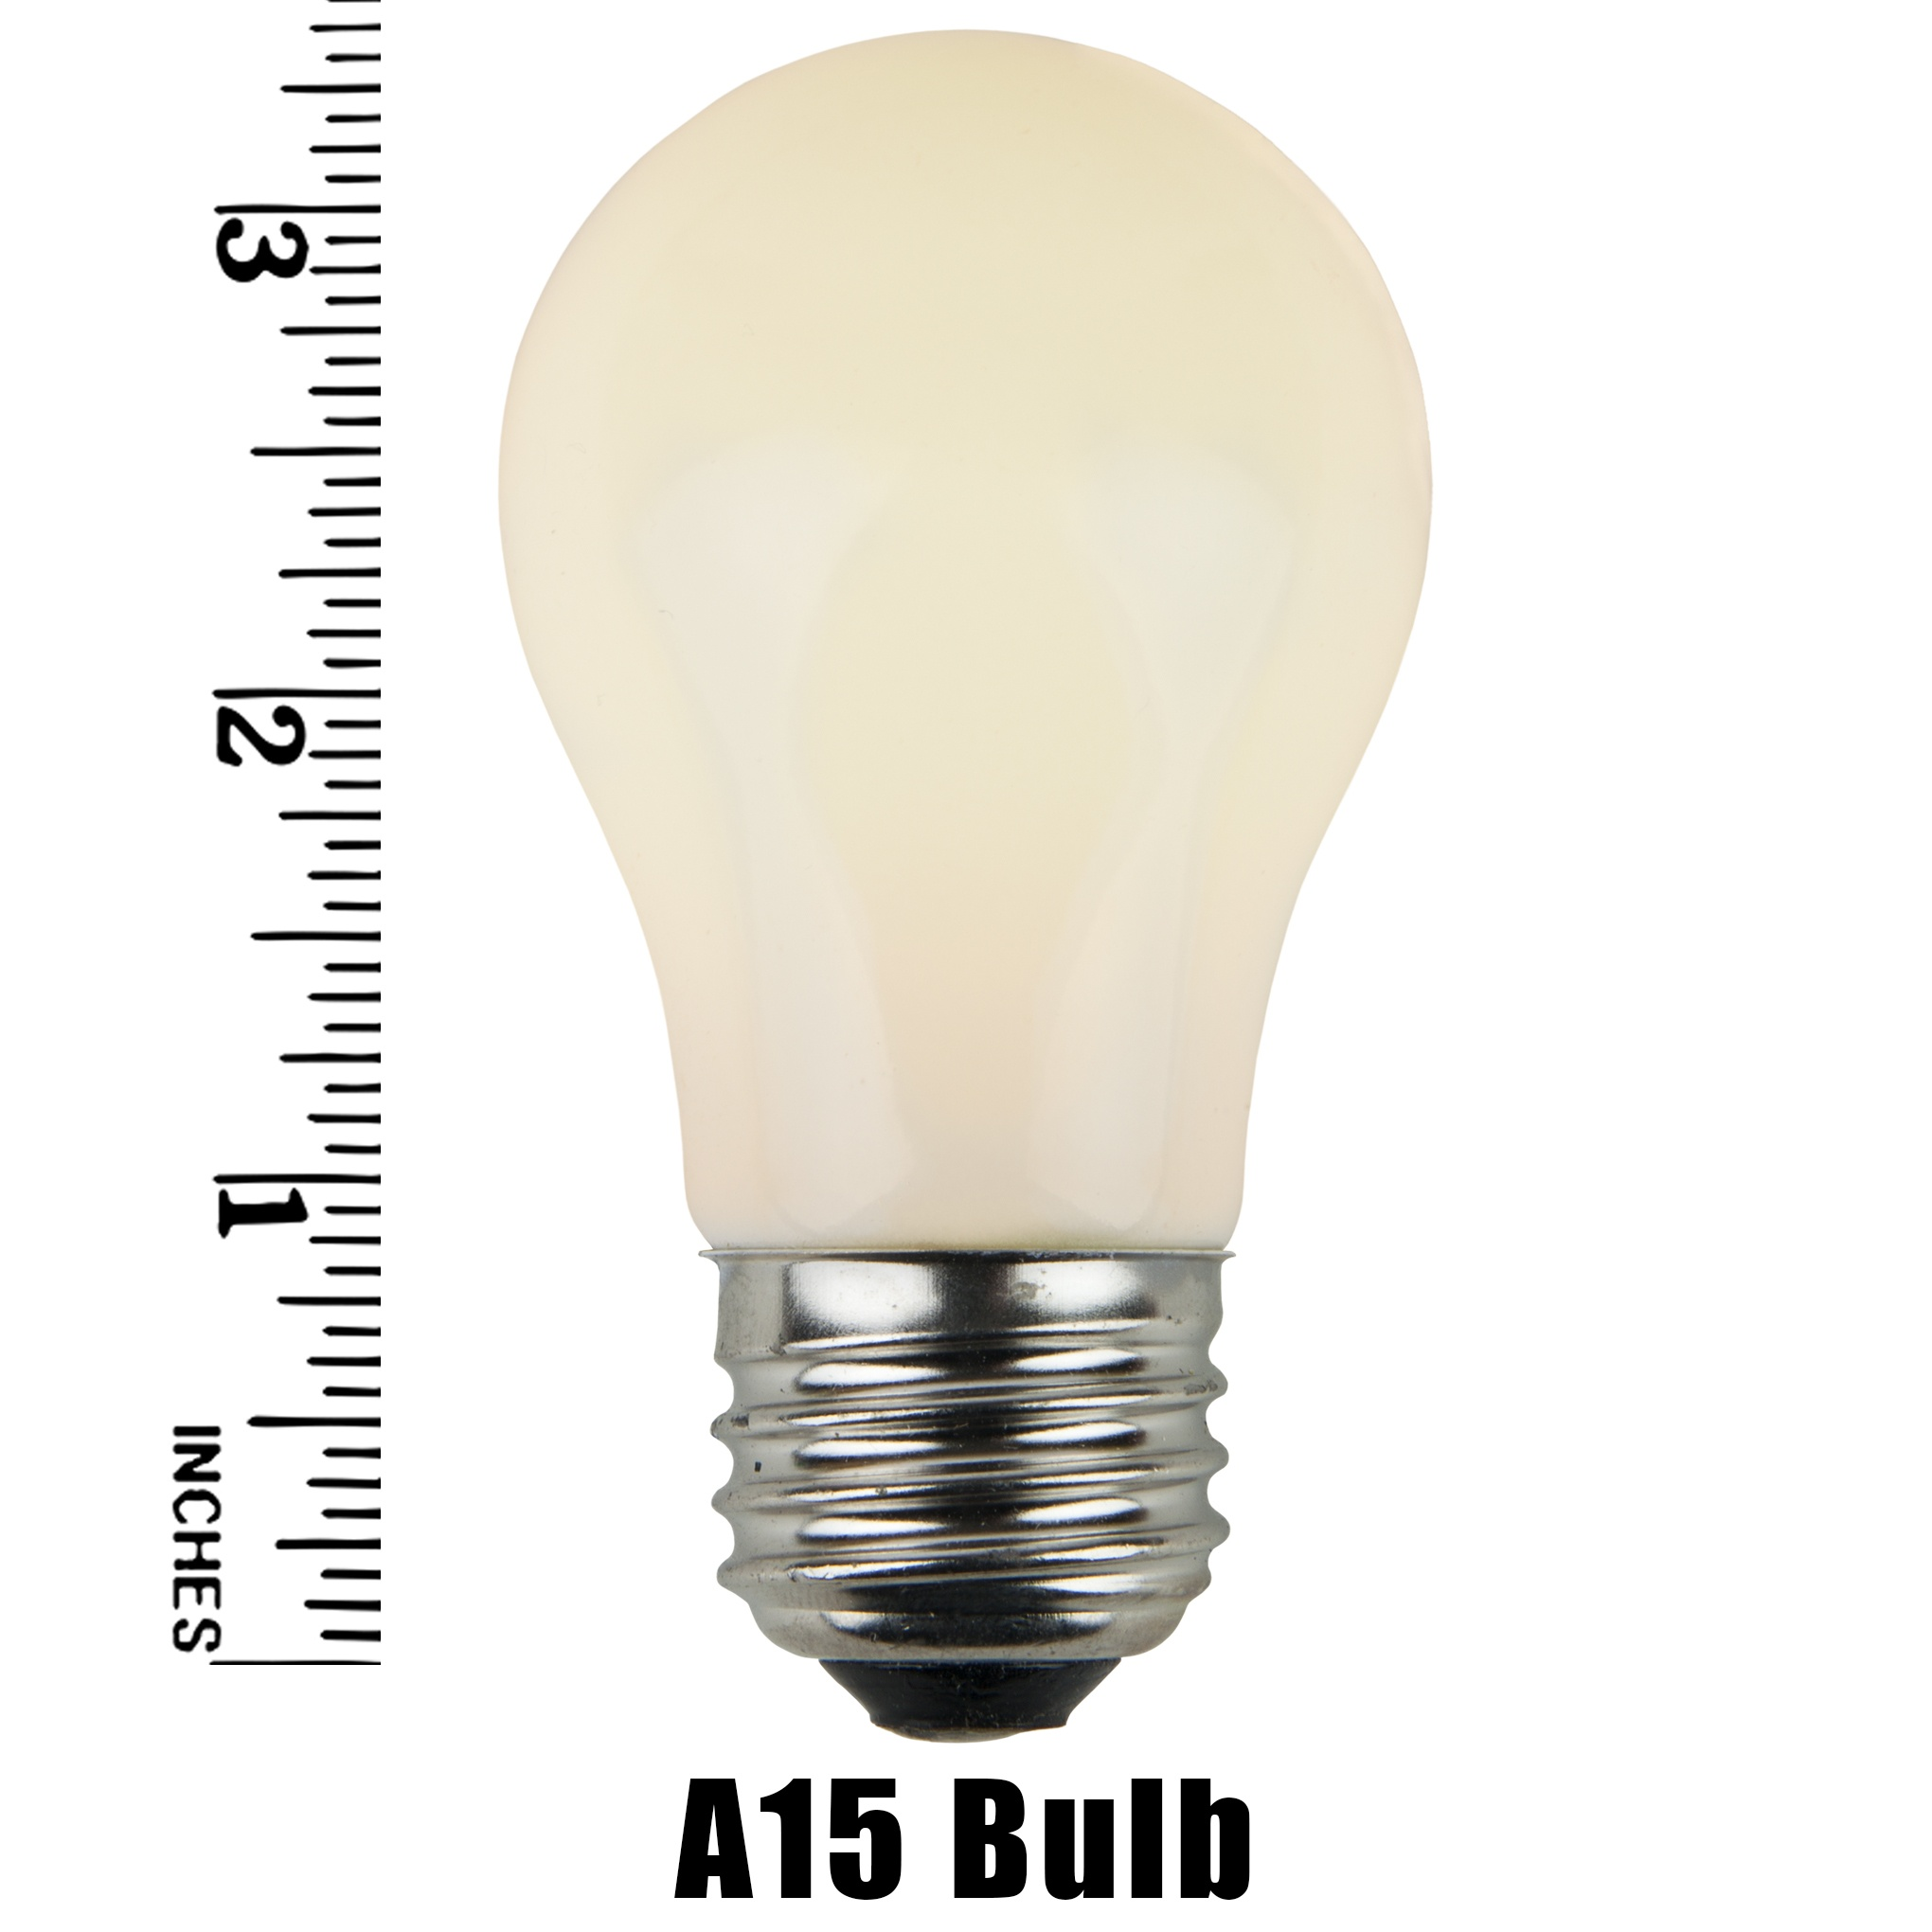 A15 White Opaque Incandescent Bulb Measurement